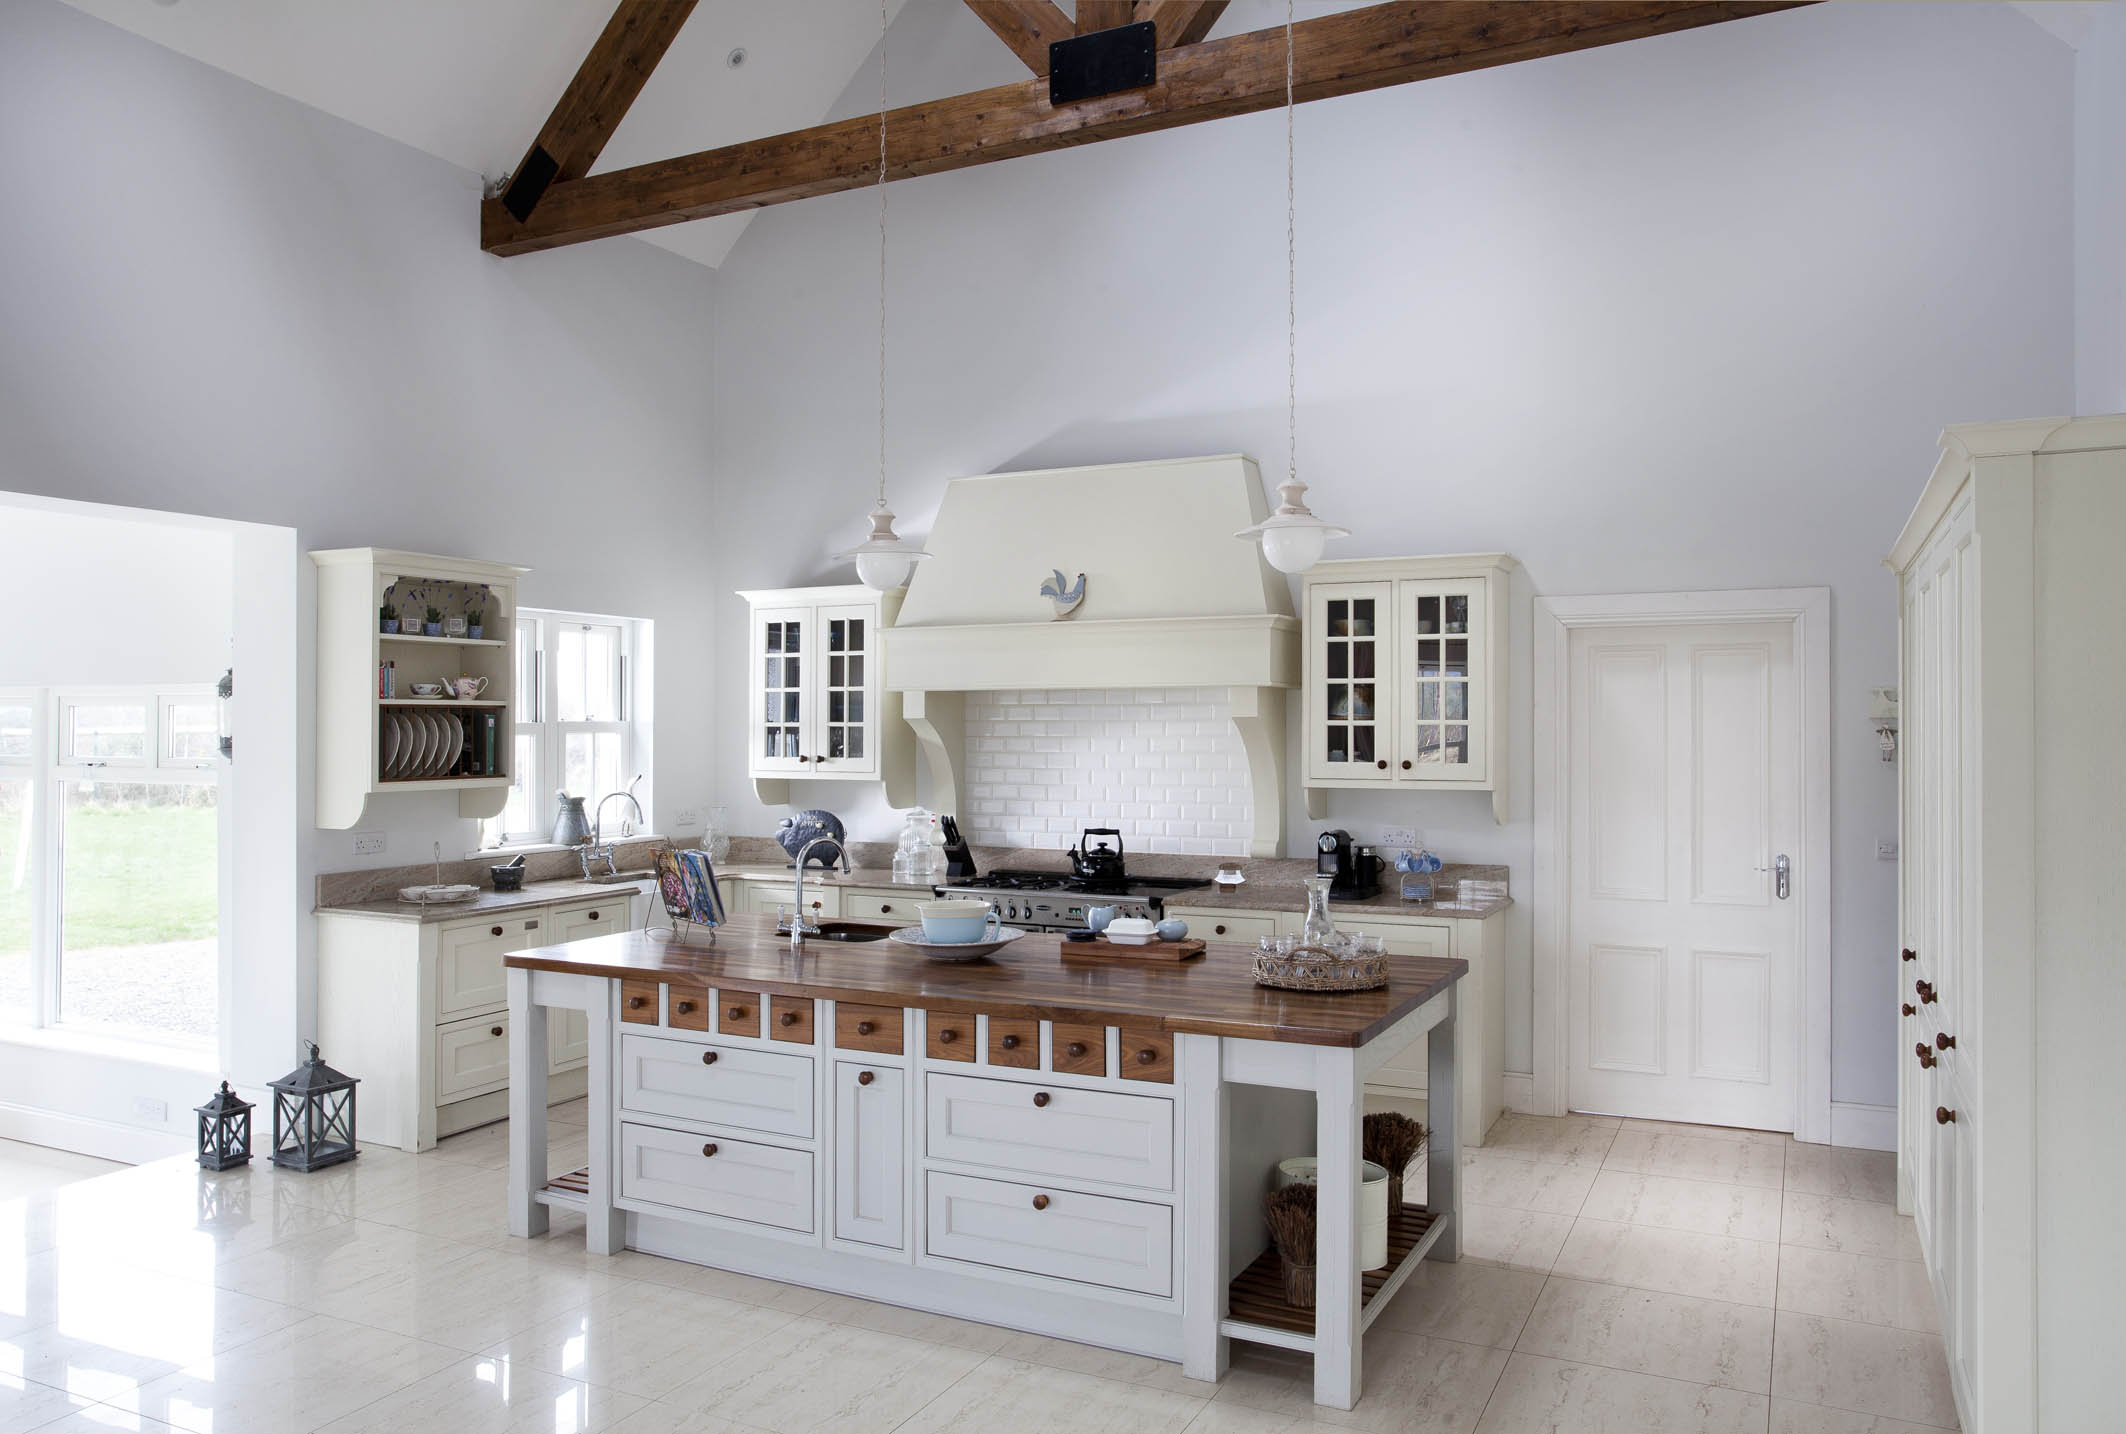 Handcrafted Bespoke Kitchen Handpainted In White And Pavilion Grey